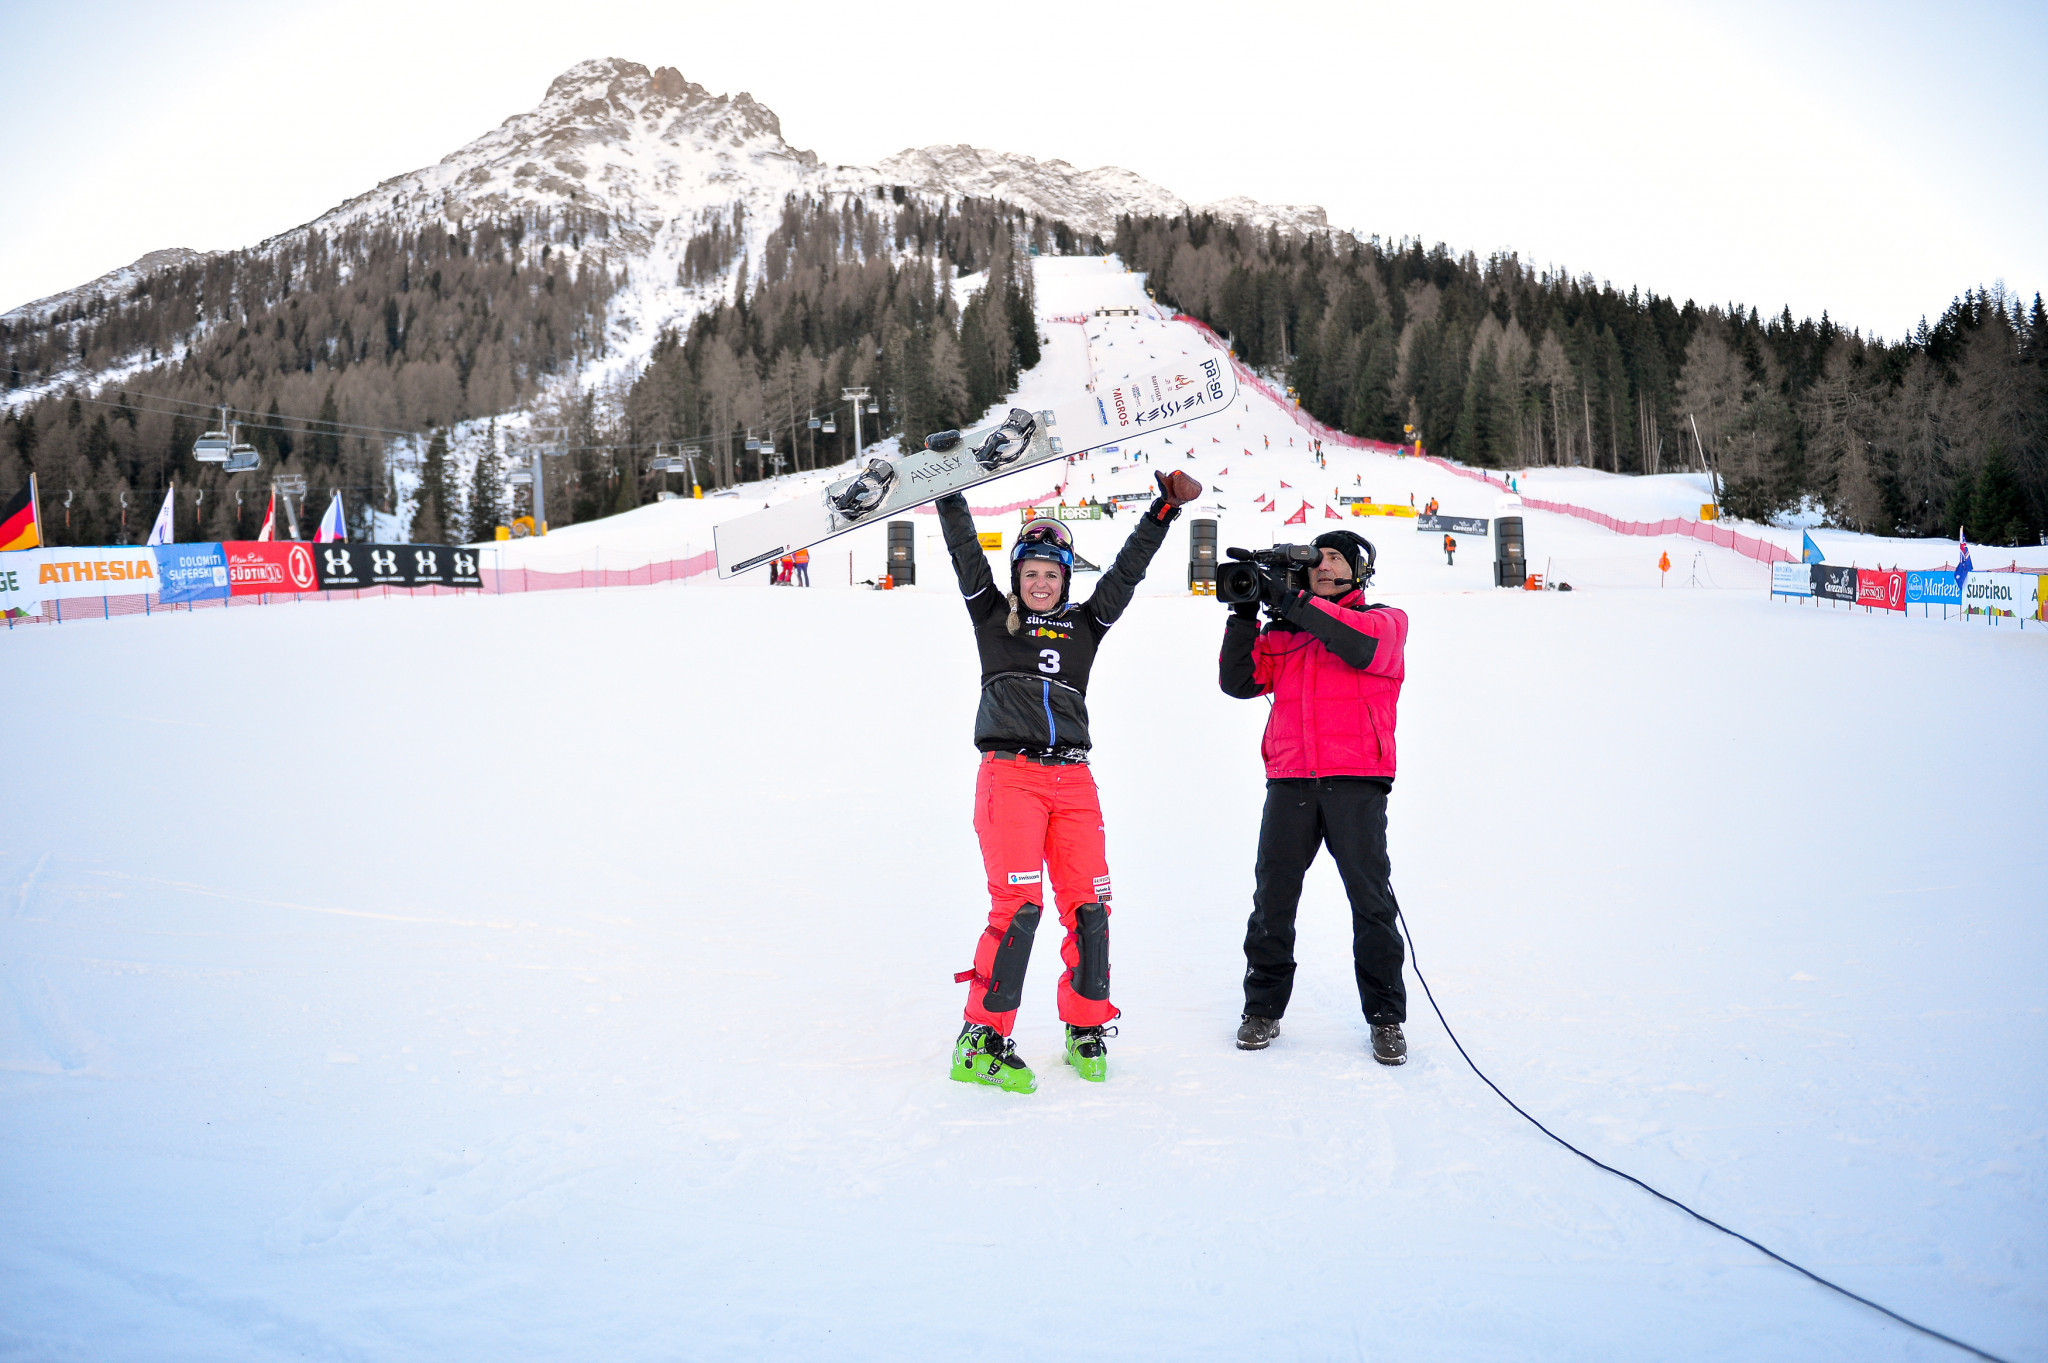 Carezza going green ahead of FIS Snowboard Alpine World Cup opener